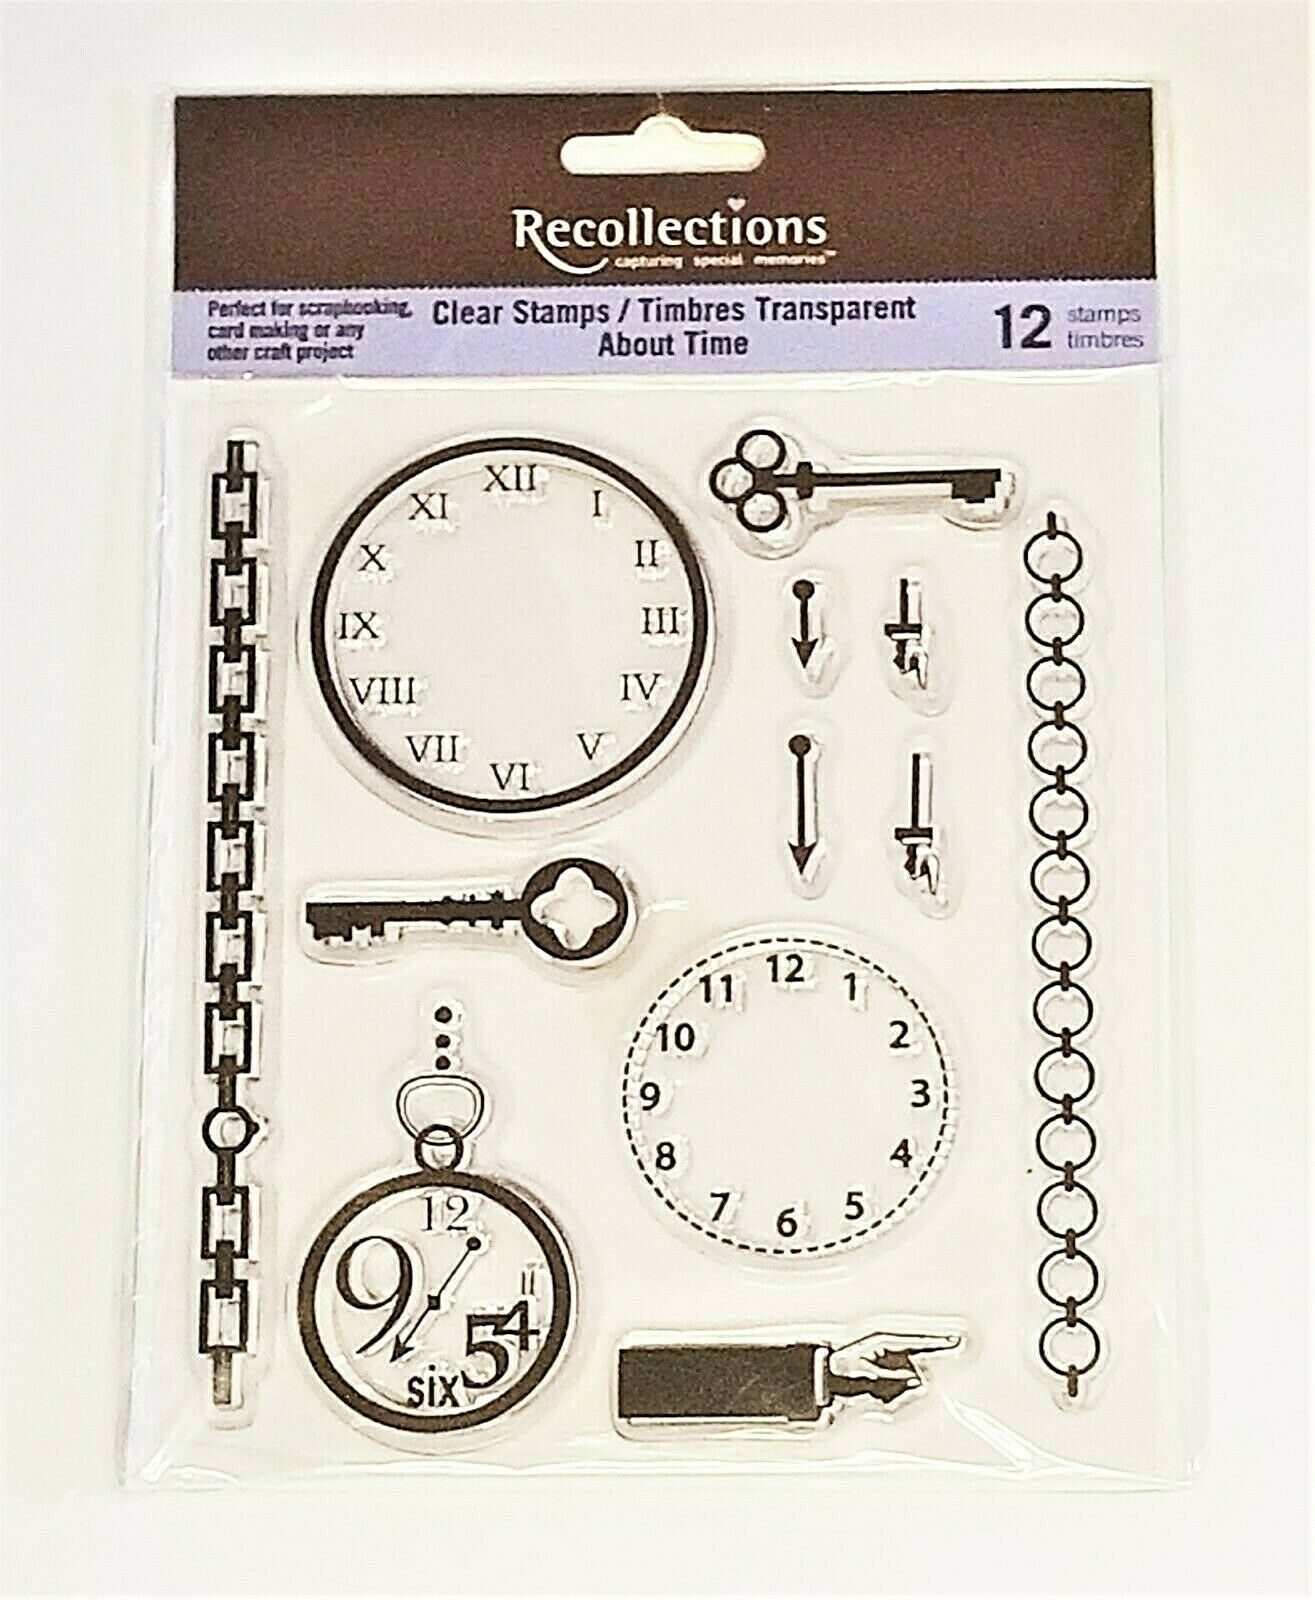 Recollections About Time Stamp Set #119925